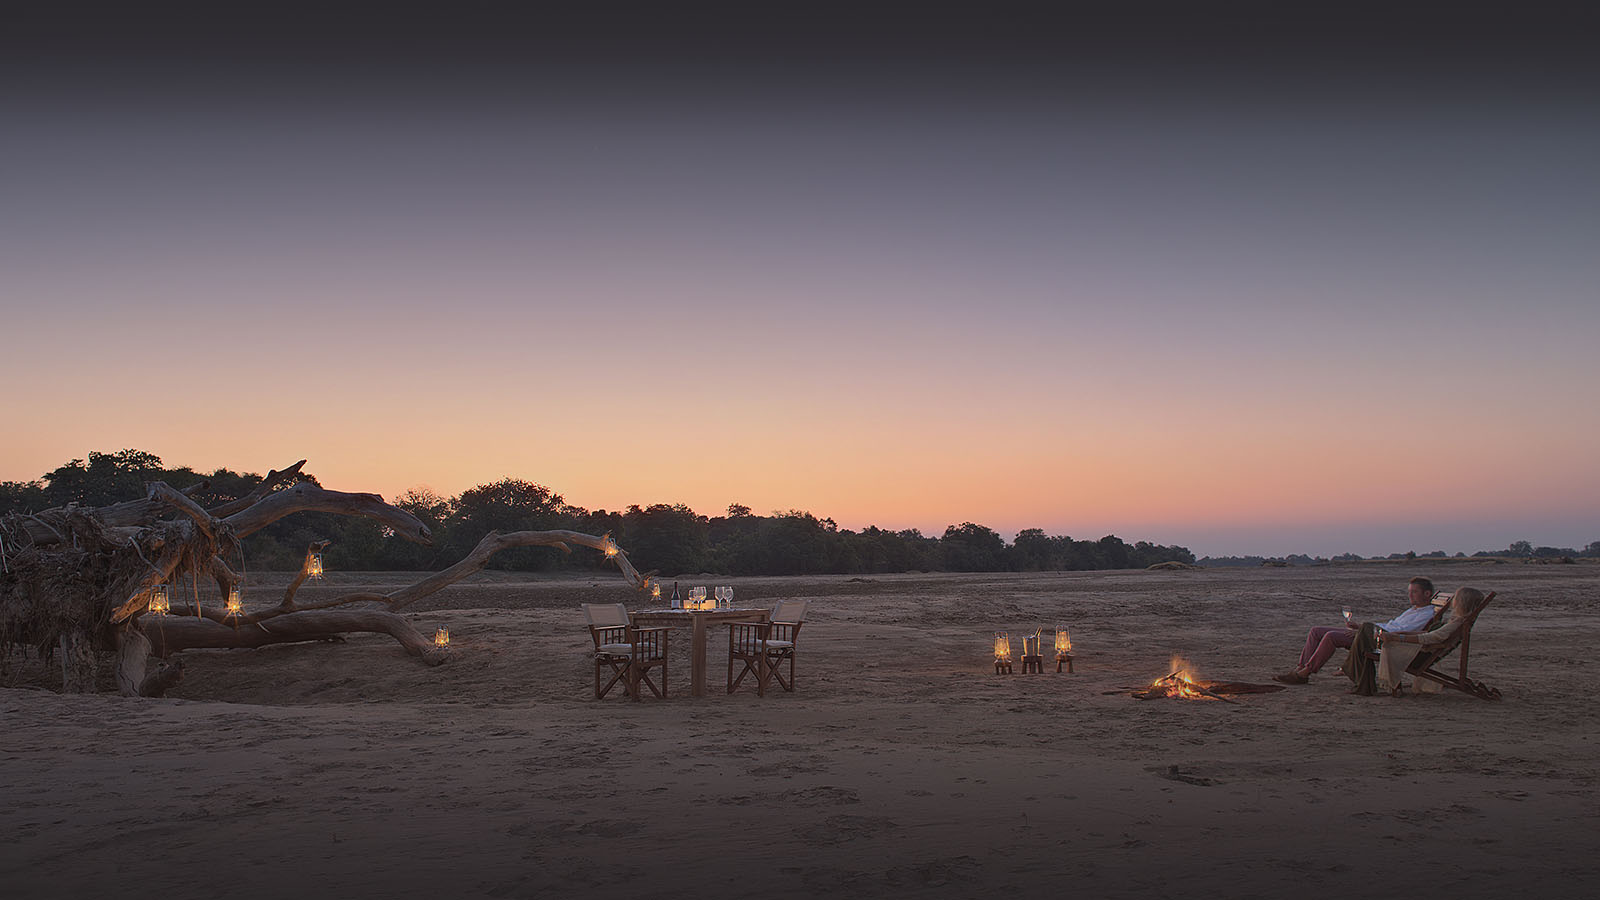 chinzombo-glamourous-lodge-zambia-in-style-tours-safari-packages-lodges-explore-south-luangwa-national-park-landscape